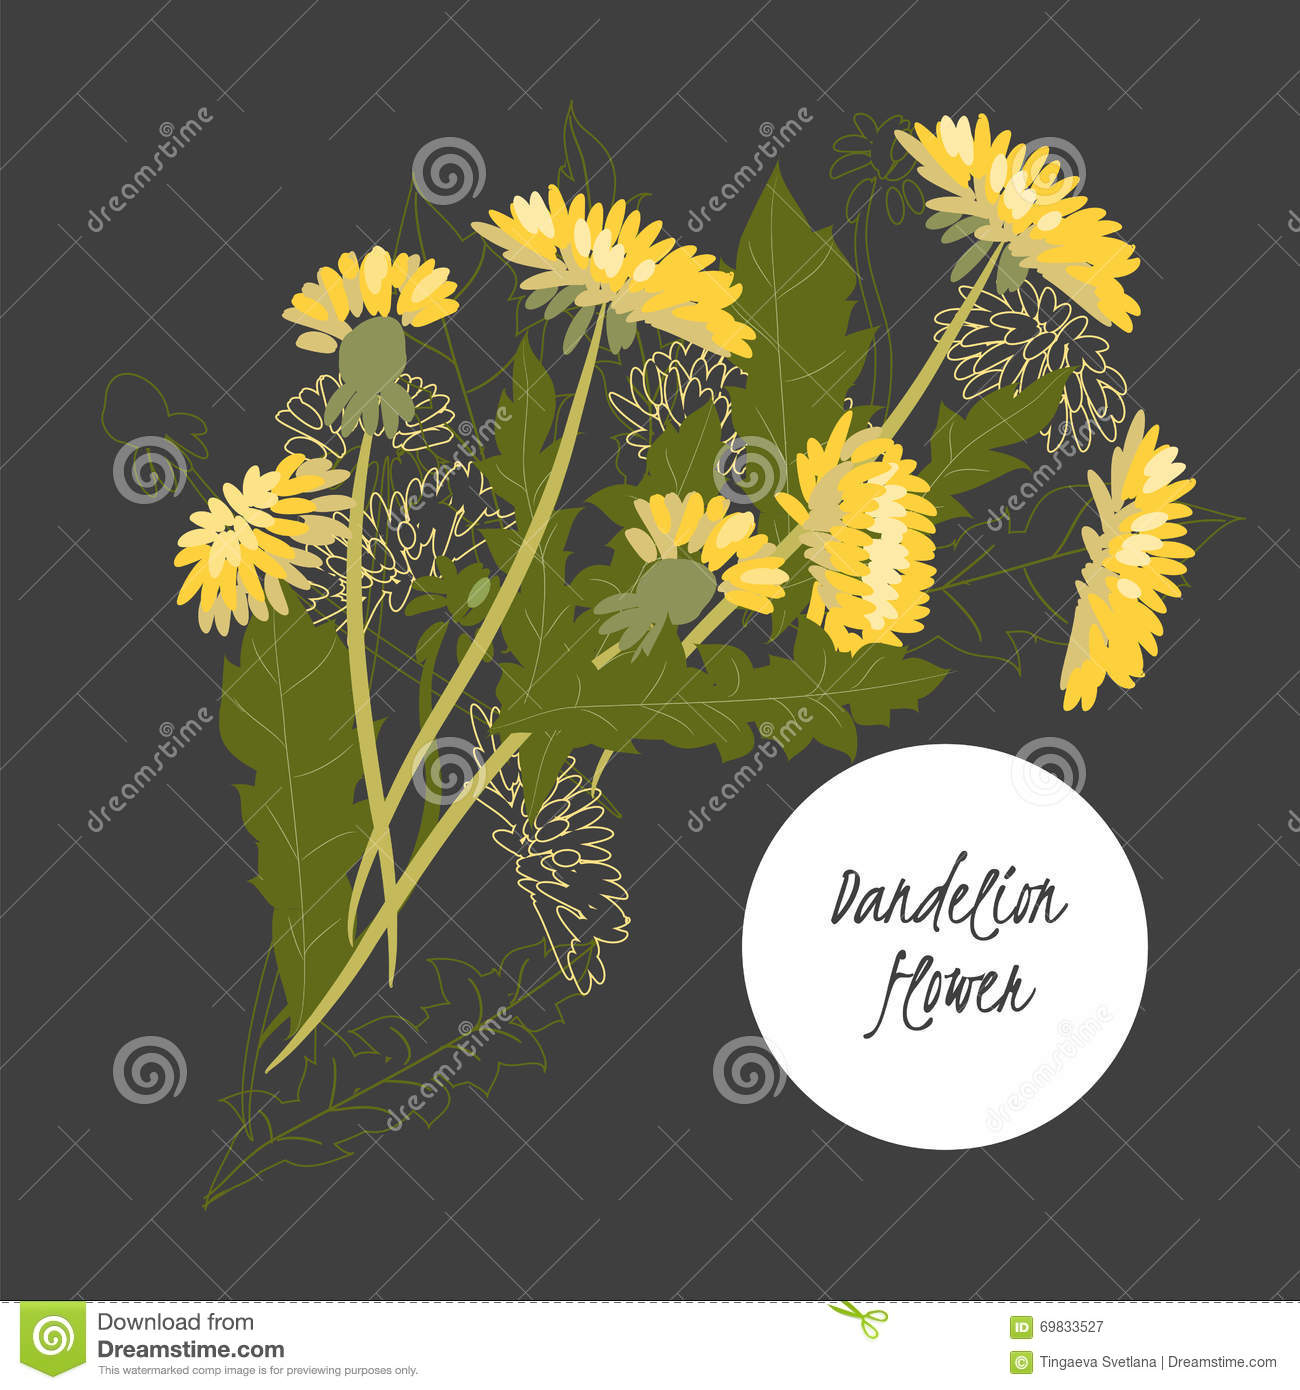 Delicate illustration Dandelion flower